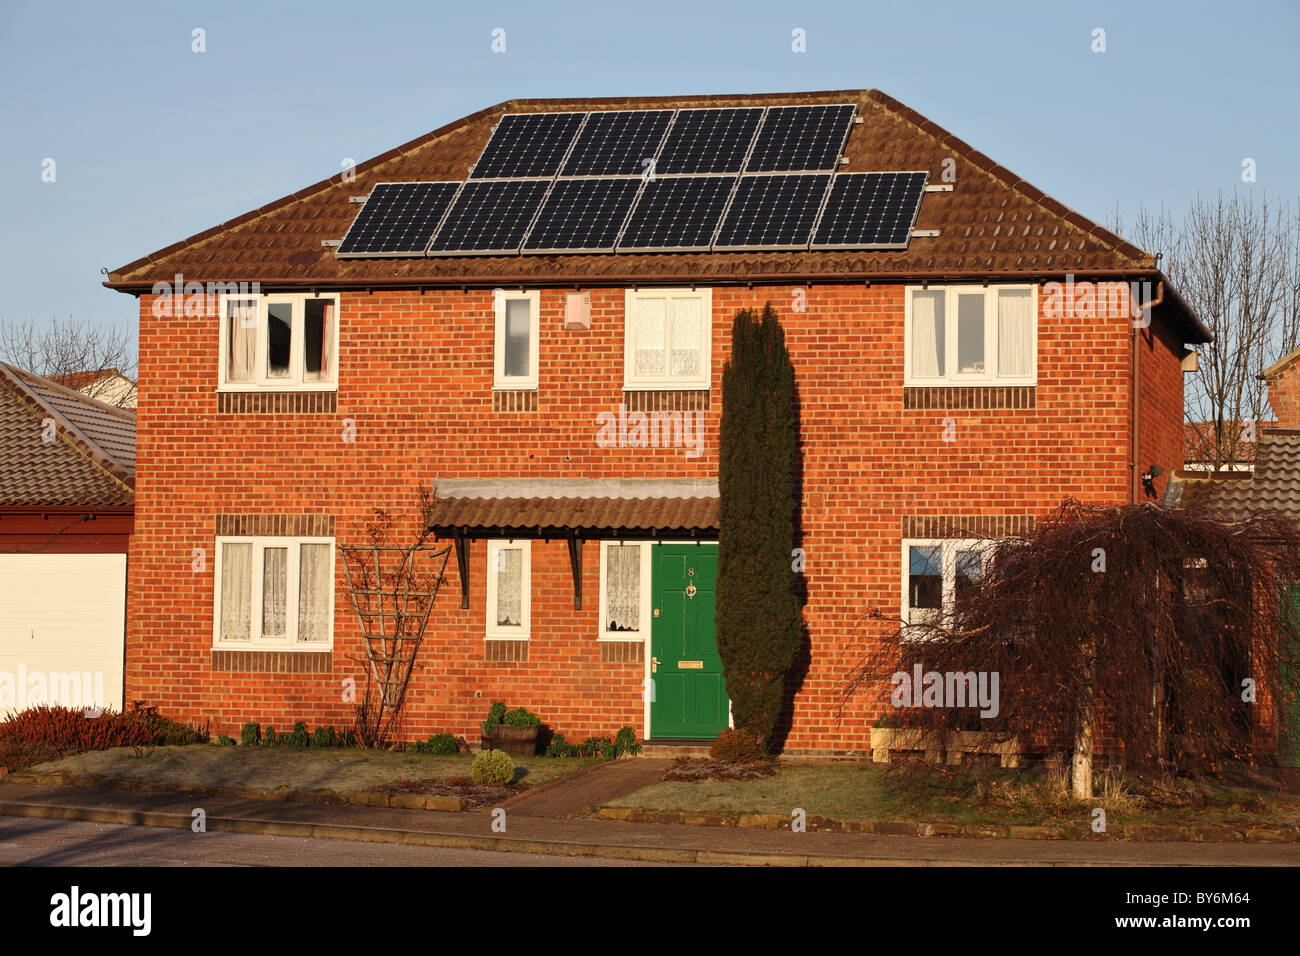 A  photo voltaic solar panel installation on a domestic house in Washington, North East England, UK. - Stock Image